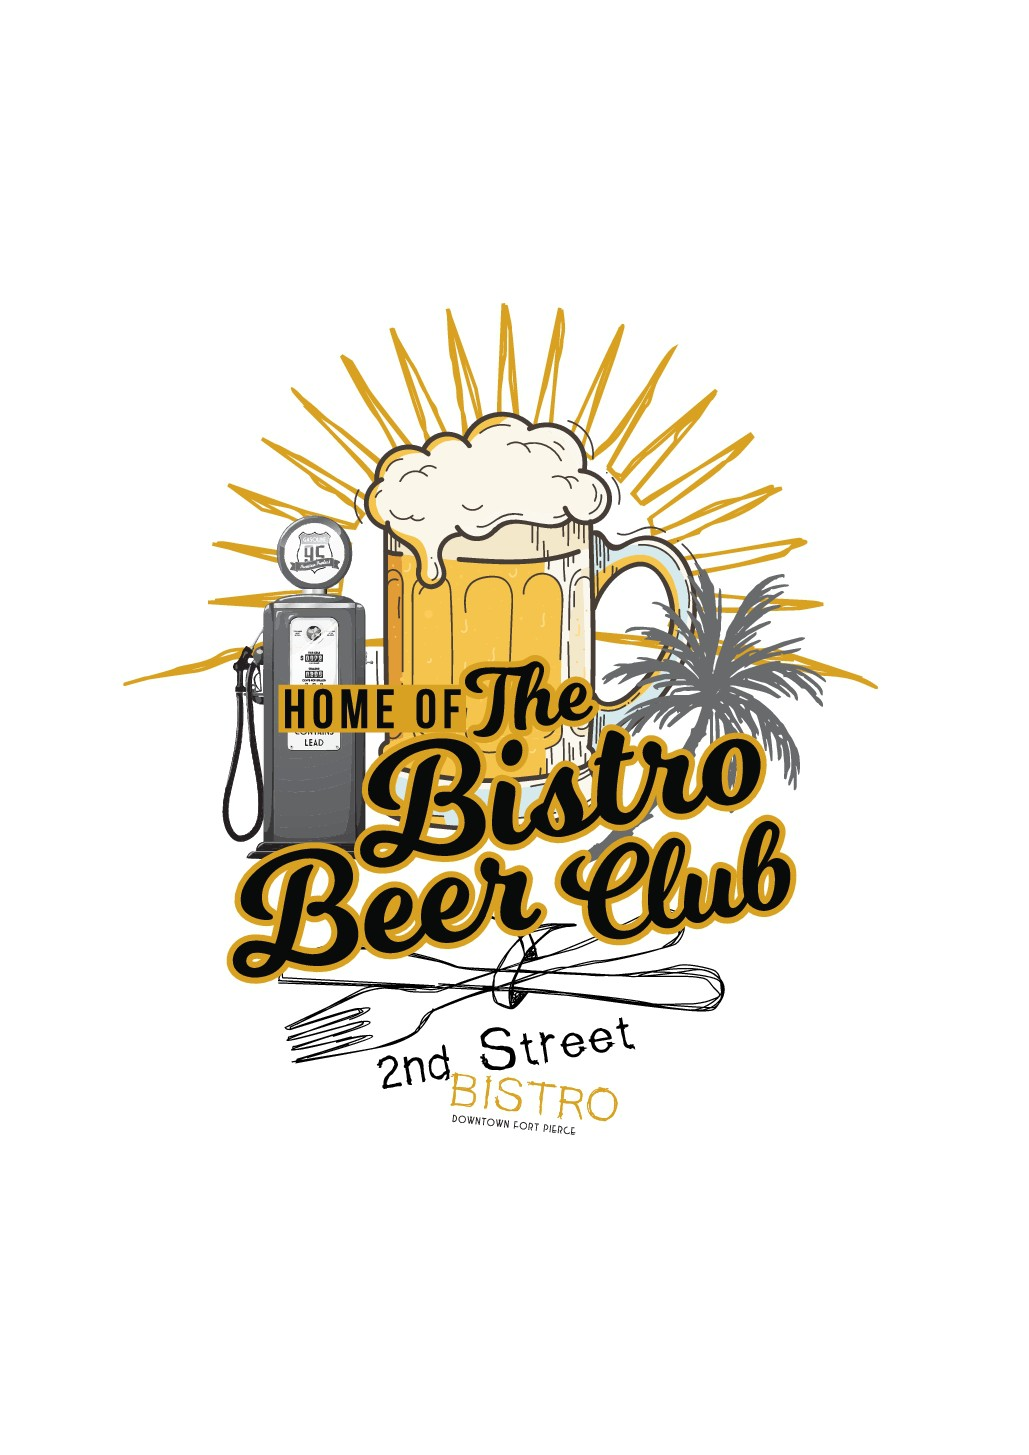 2nd Street Bistro Retail T-shirts and hats for sale